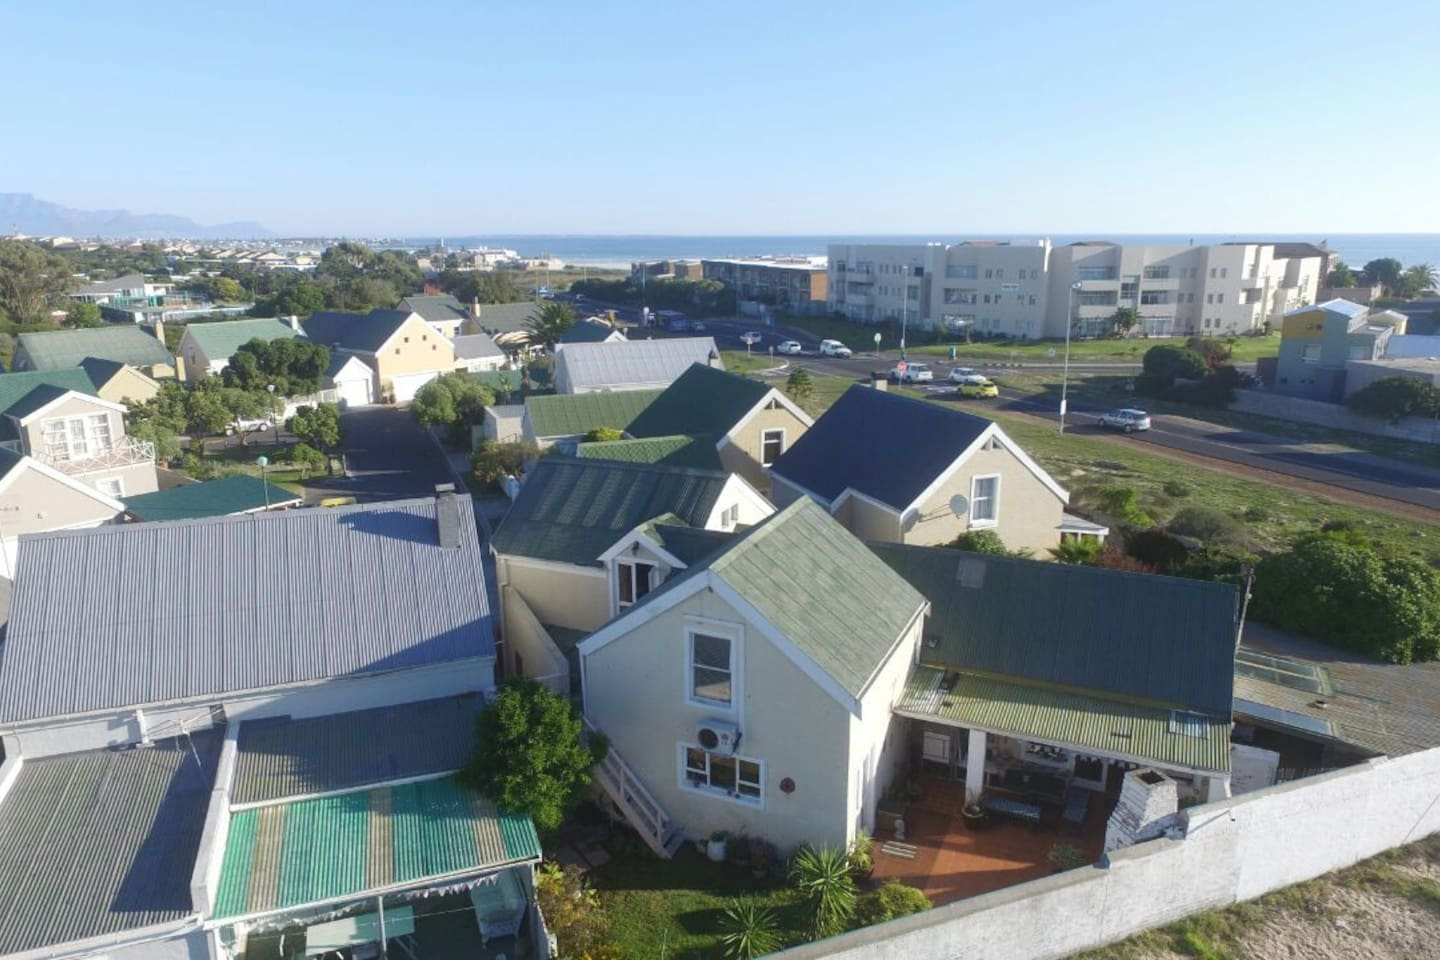 view from above towards the beach.